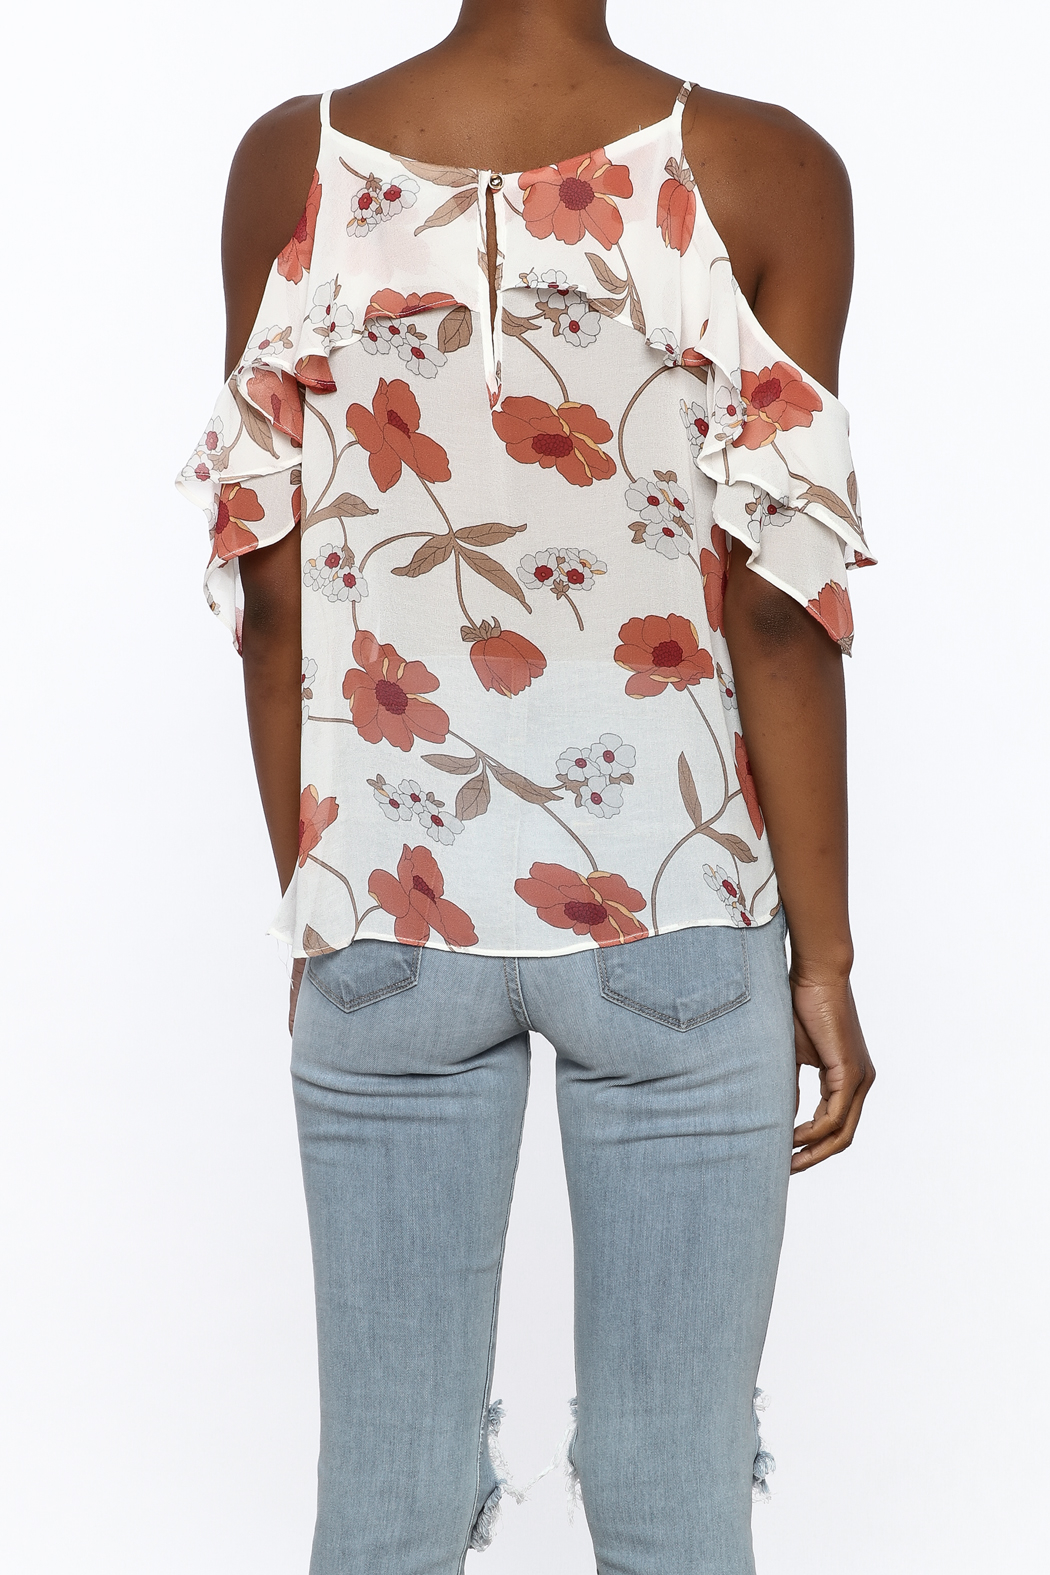 MICHEL Ruffle Floral Top - Back Cropped Image